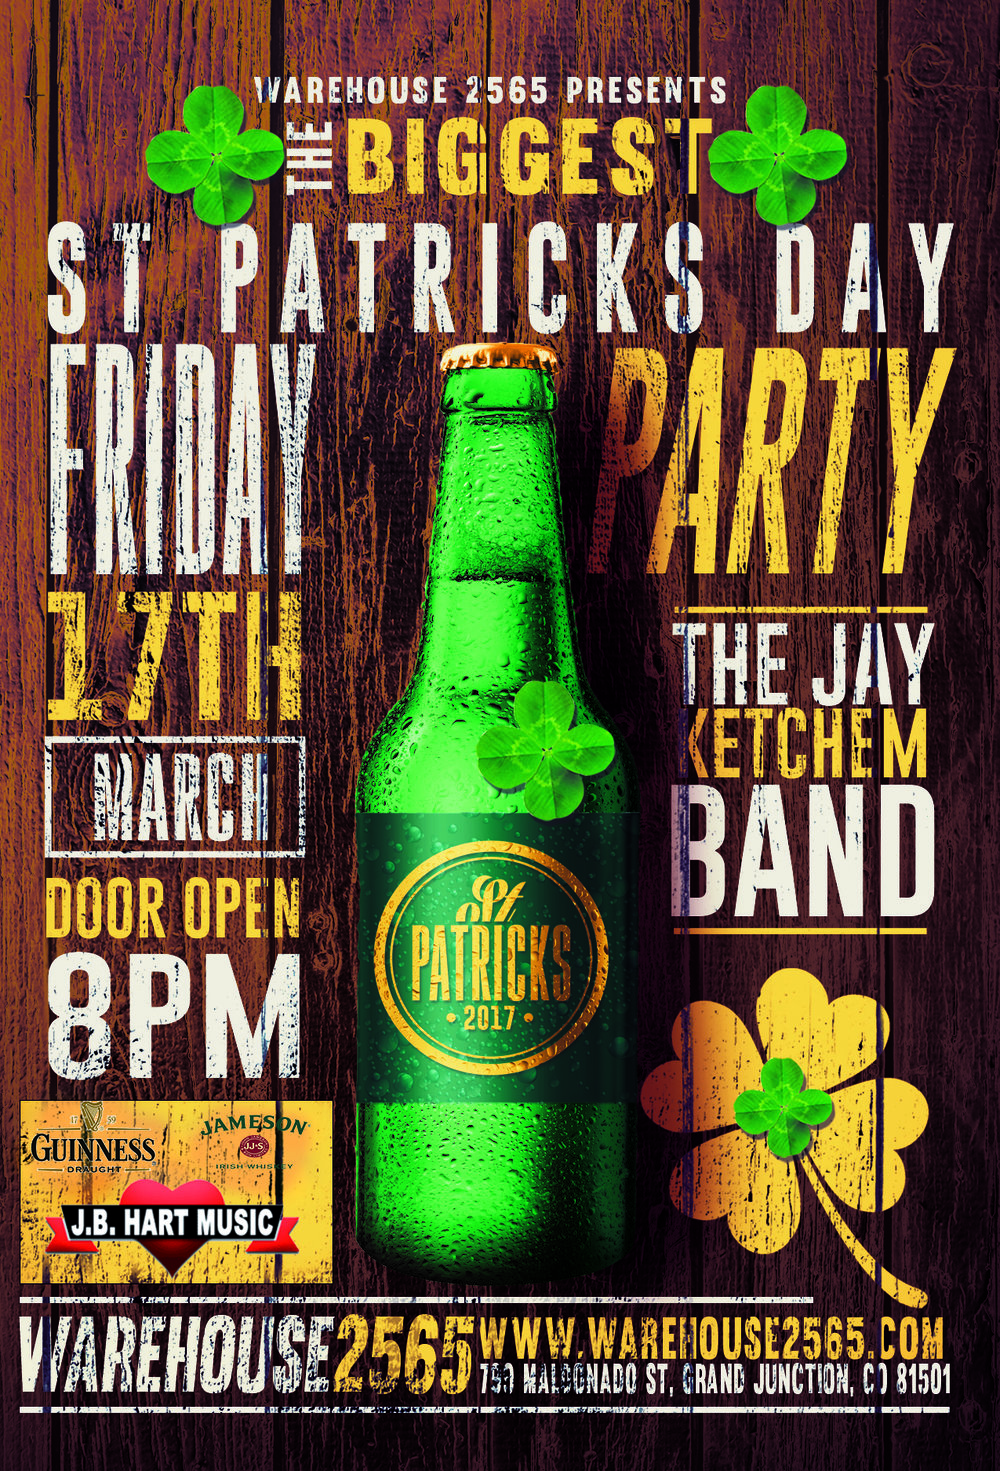 Come get a little Western with us and the Jay Ketchem Band brought to you in part by Guinness, Jameson Irish Whiskey and Hart Music.